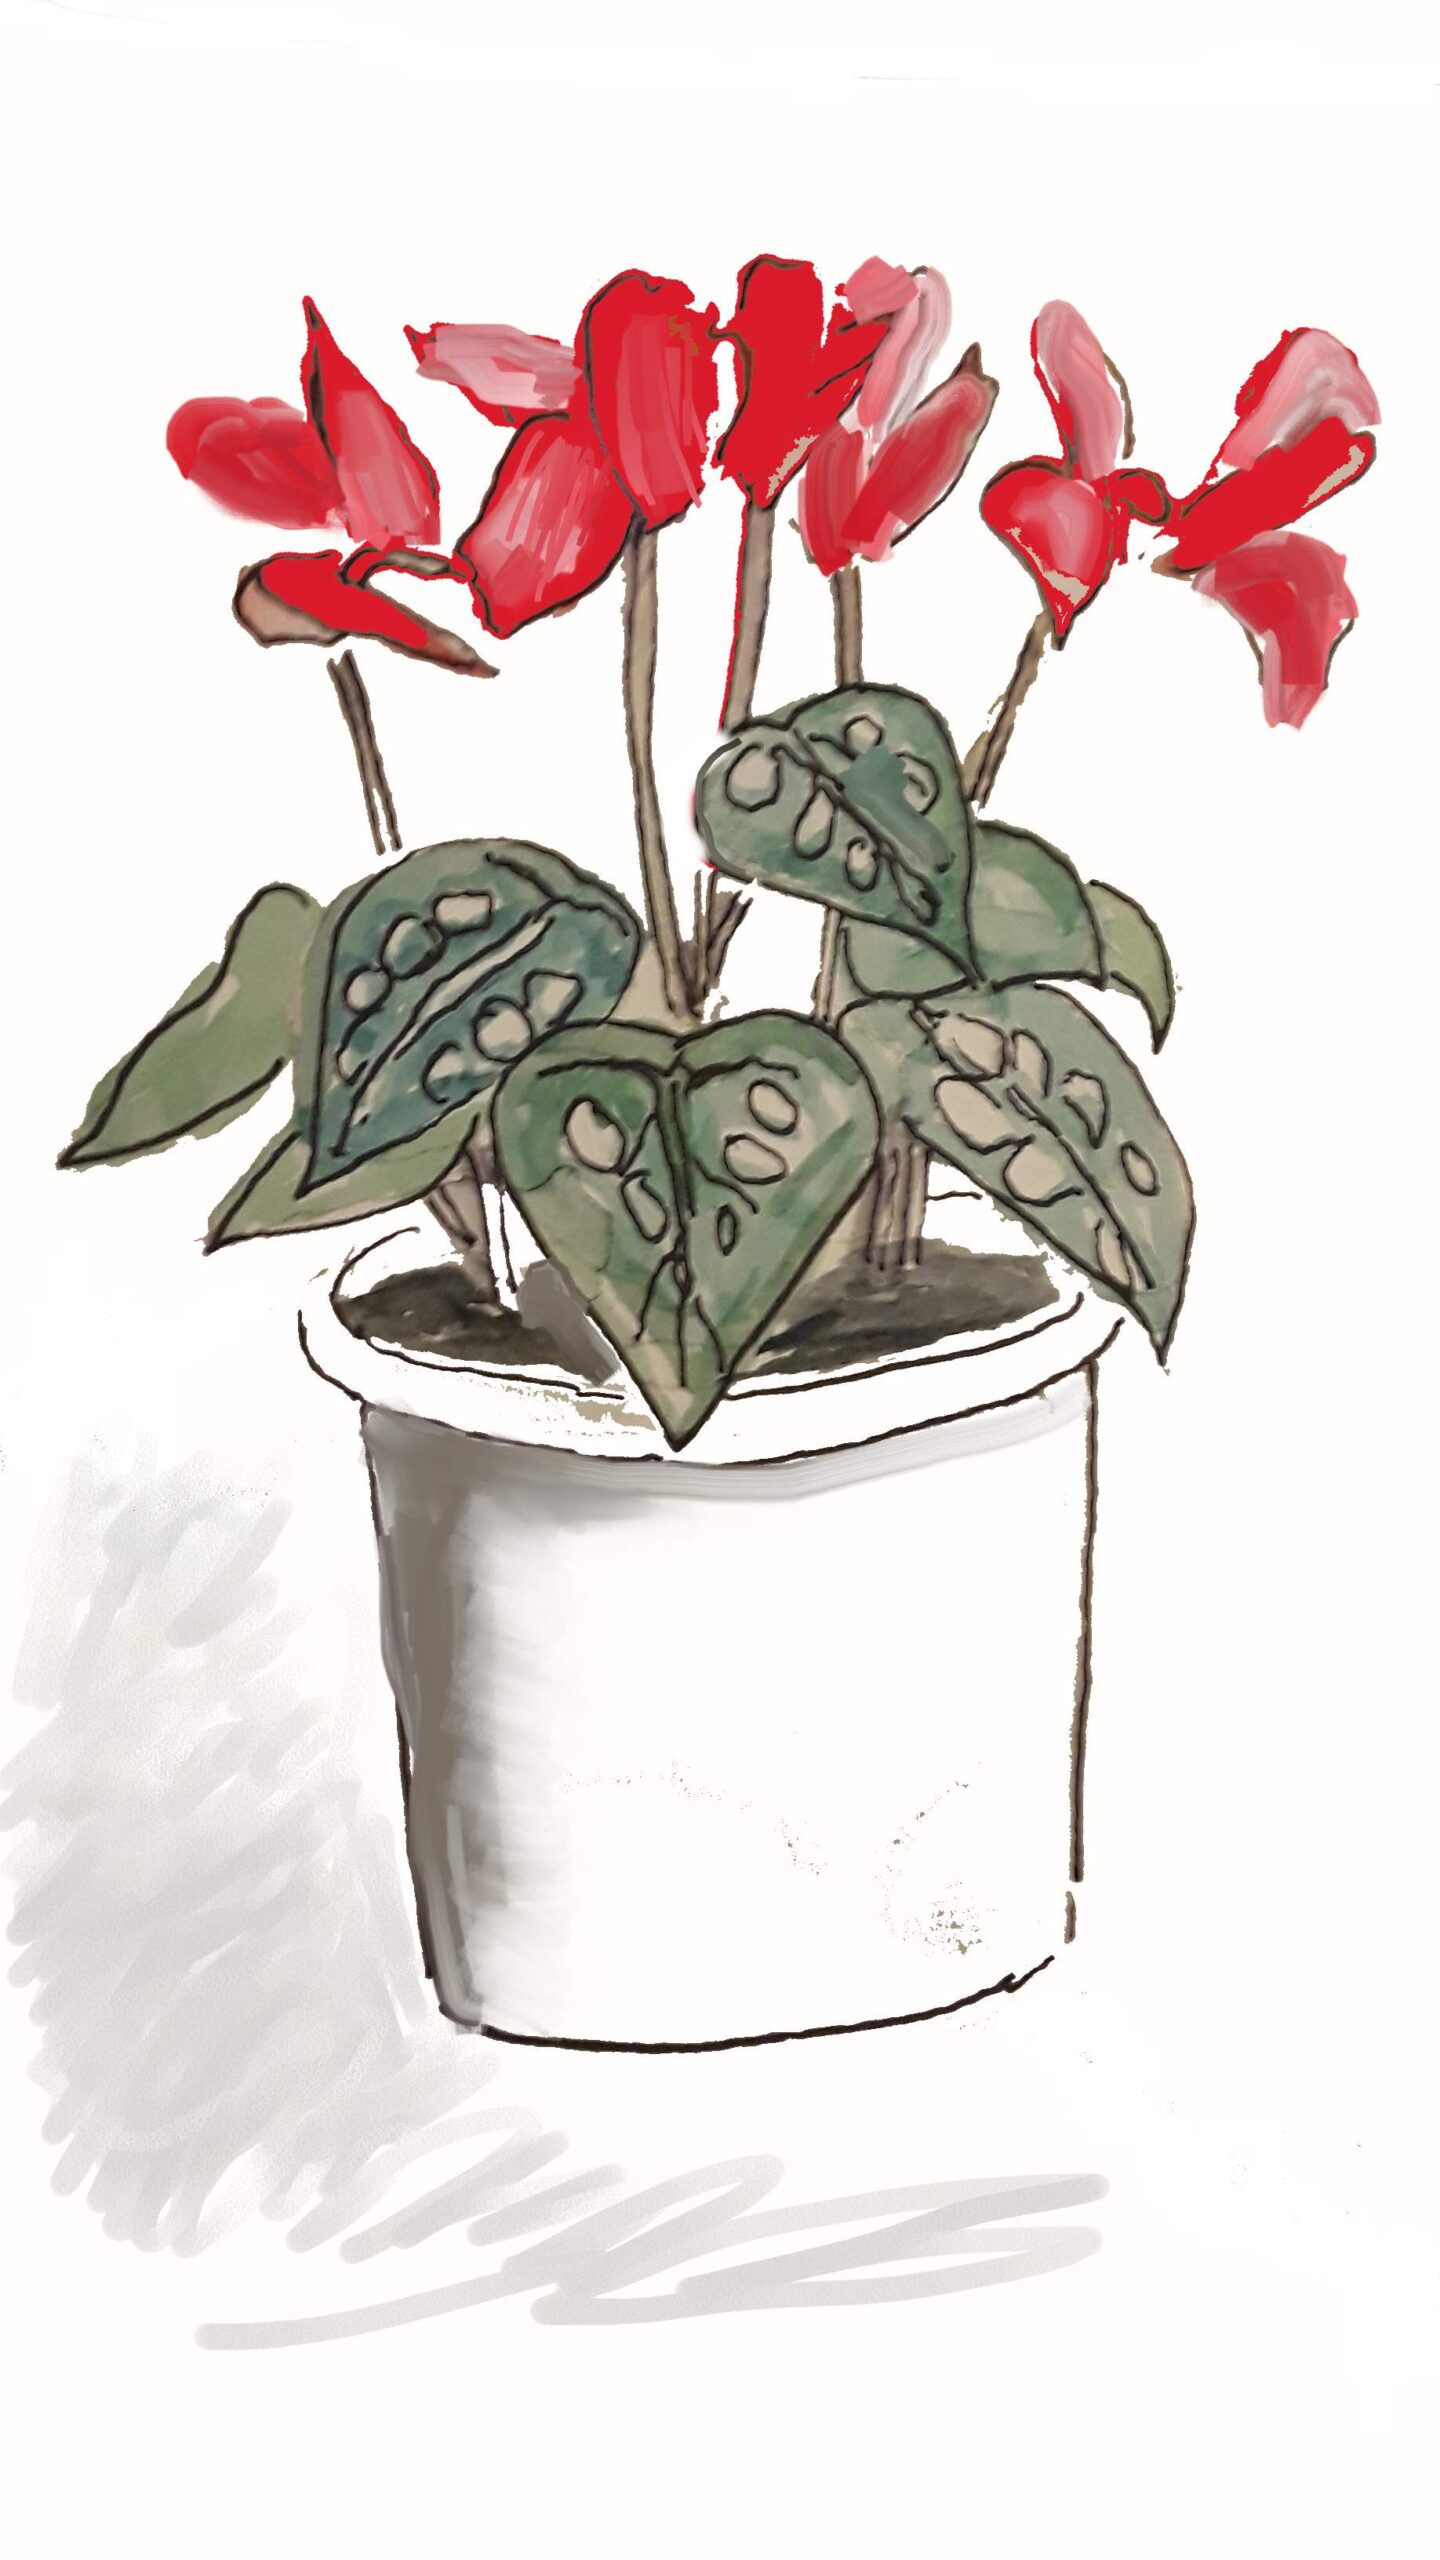 watercolor of red and pink potted cyclamen